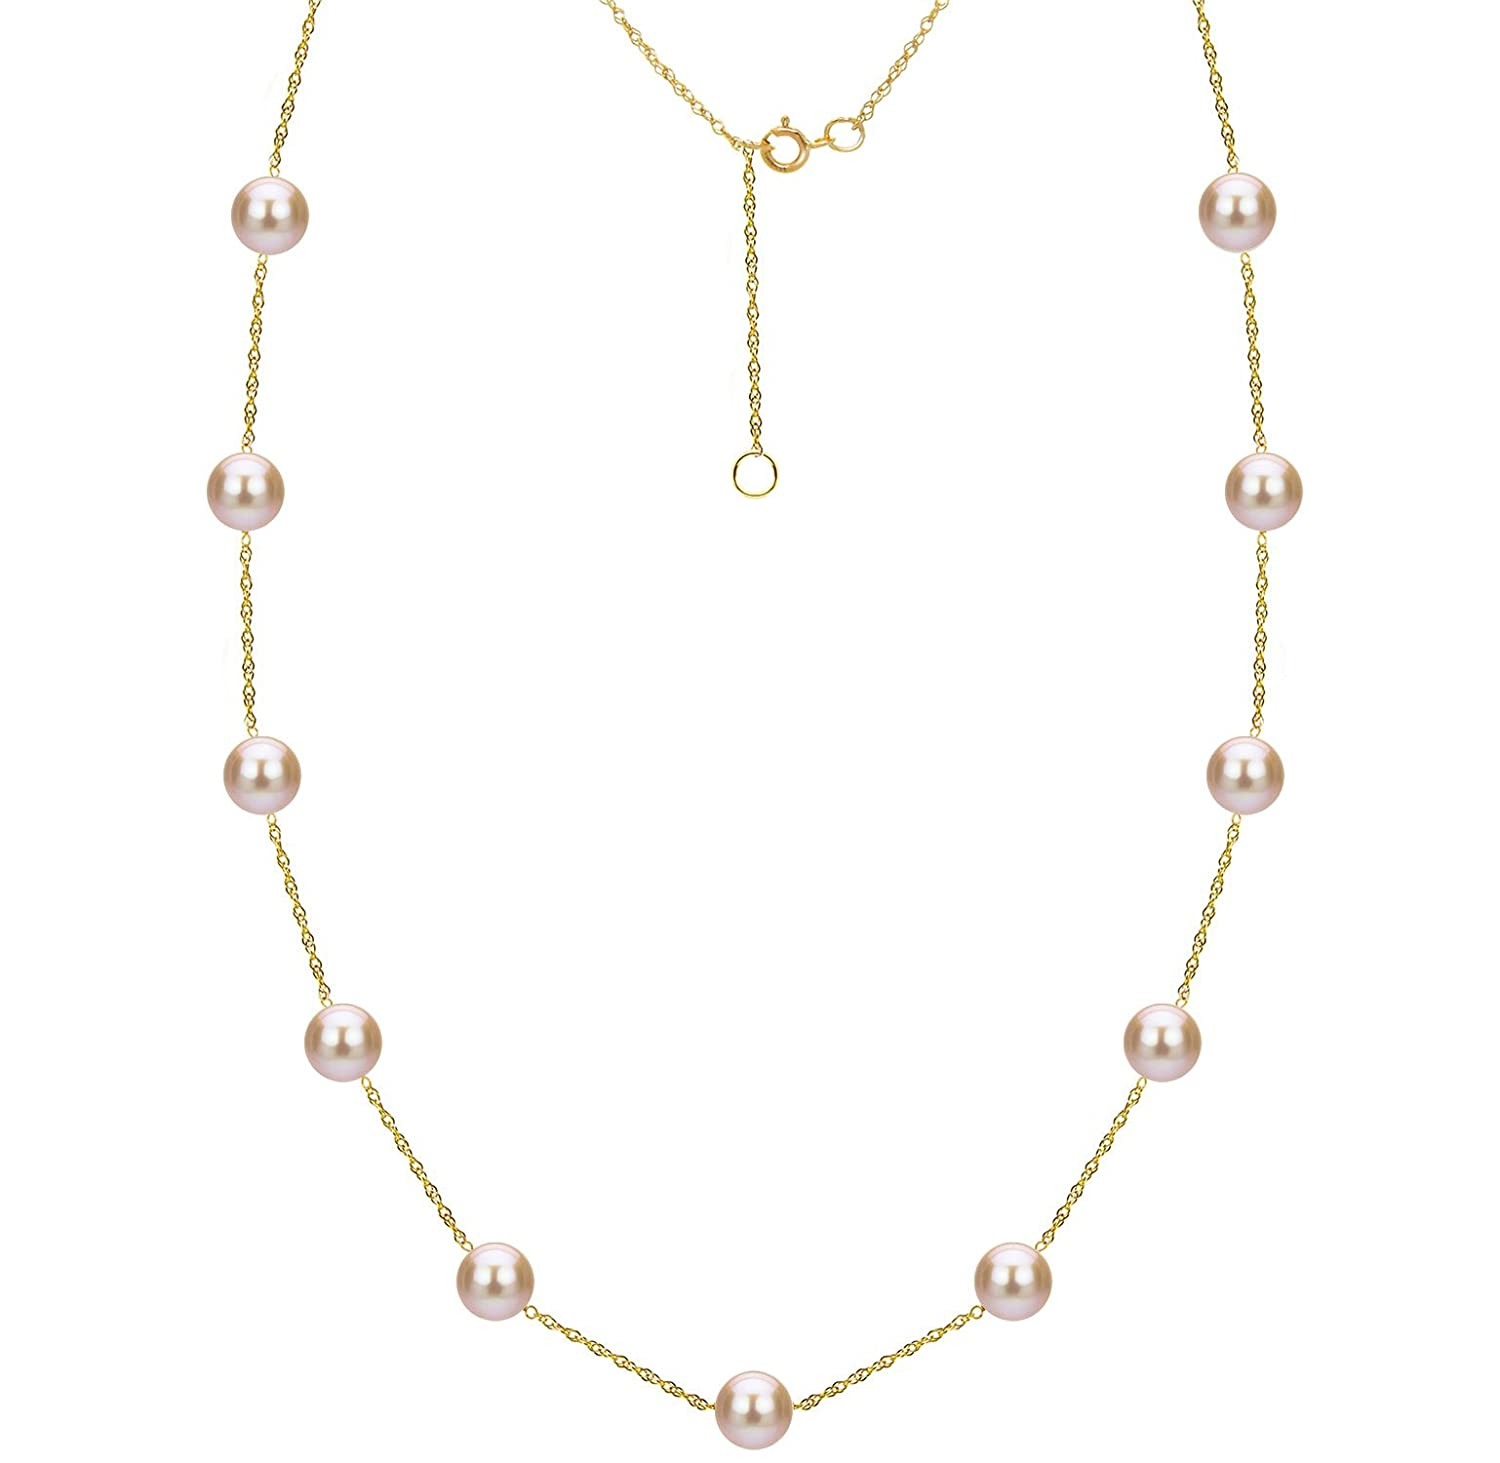 21f4f4a9e7507 Tin Cup Station Cultured Freshwater Pink Pearl Necklace 14K Gold Jewelry  for Women 18 inch 8-8.5mm